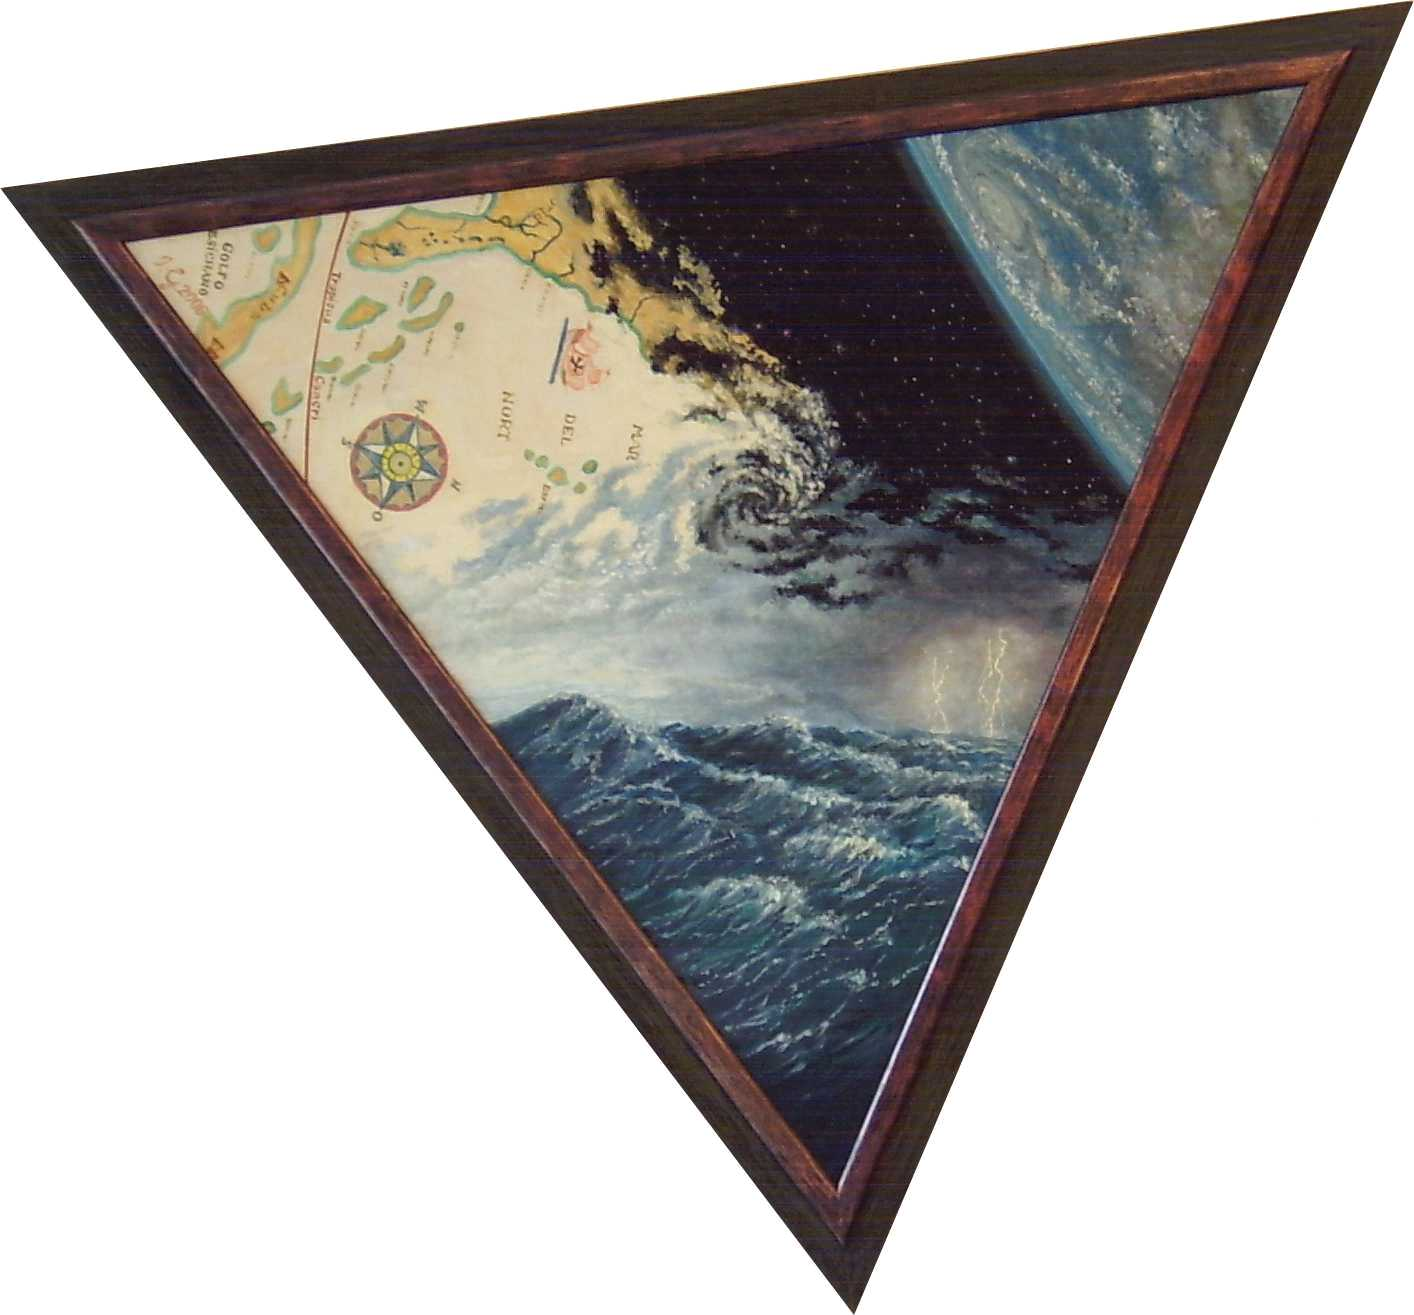 The Bermuda Triangle oils on canvas by Igors Gengeris